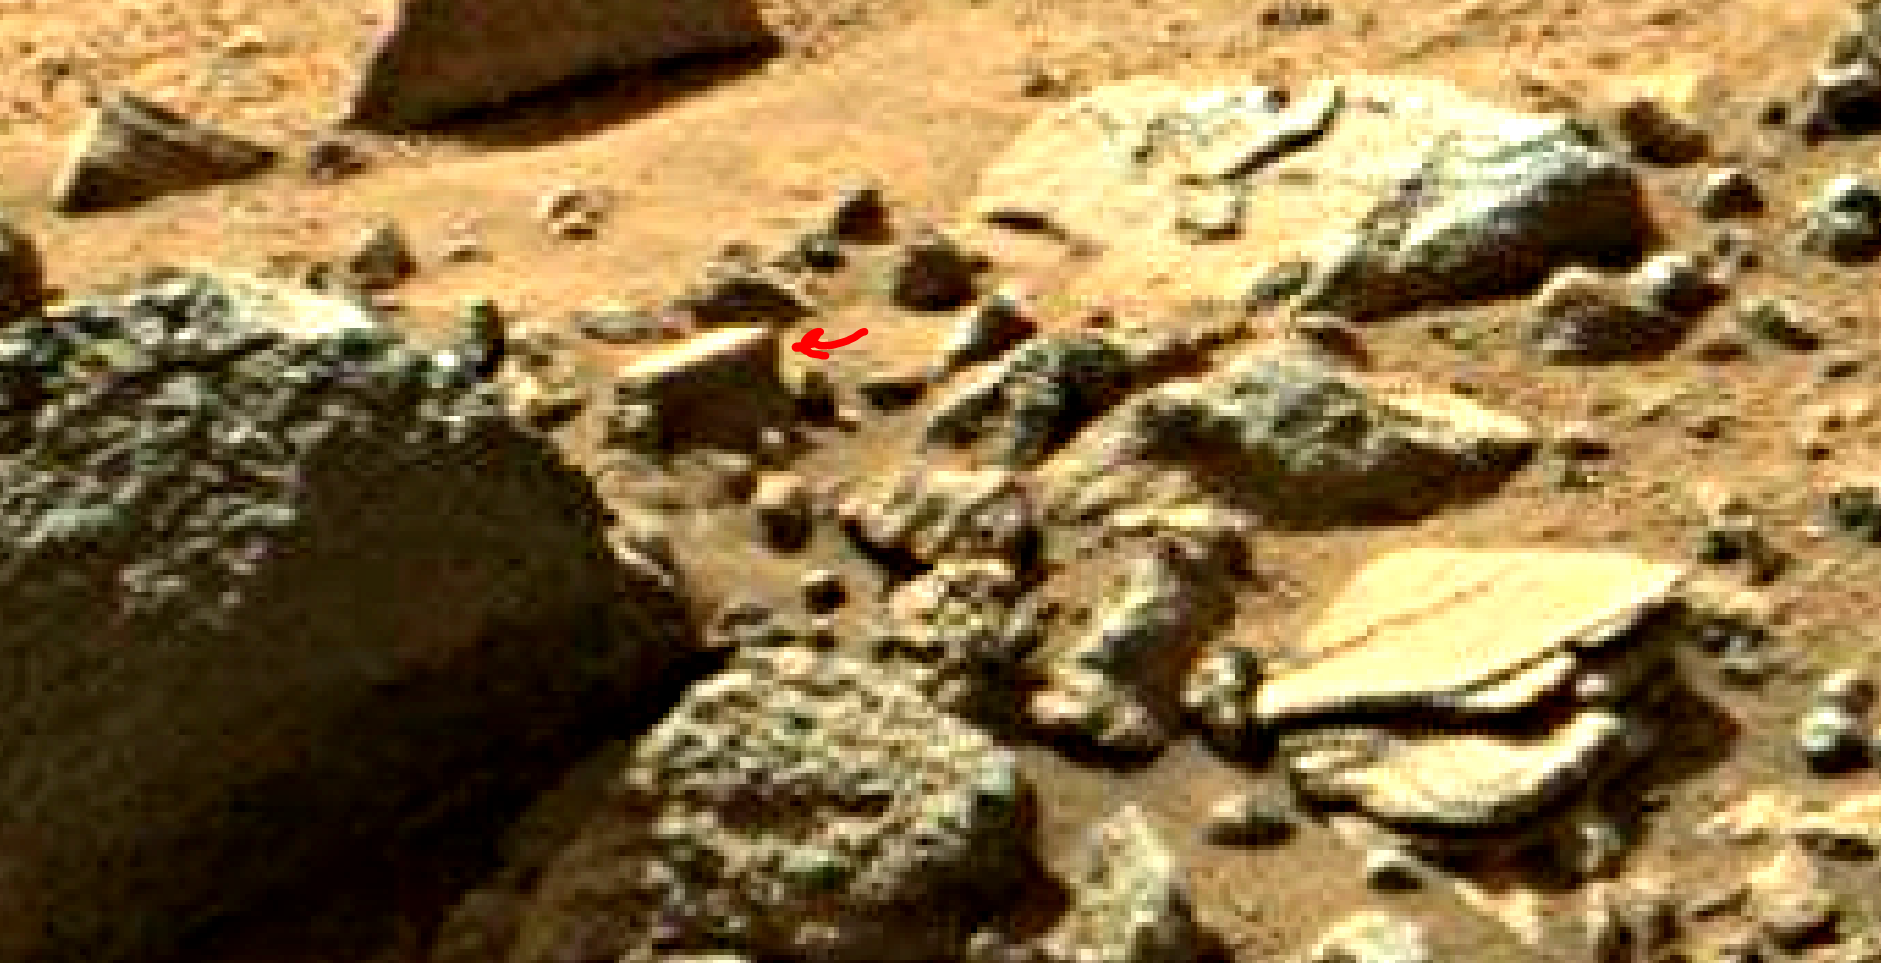 mars sol 1405 anomaly artifacts 9 was life on mars